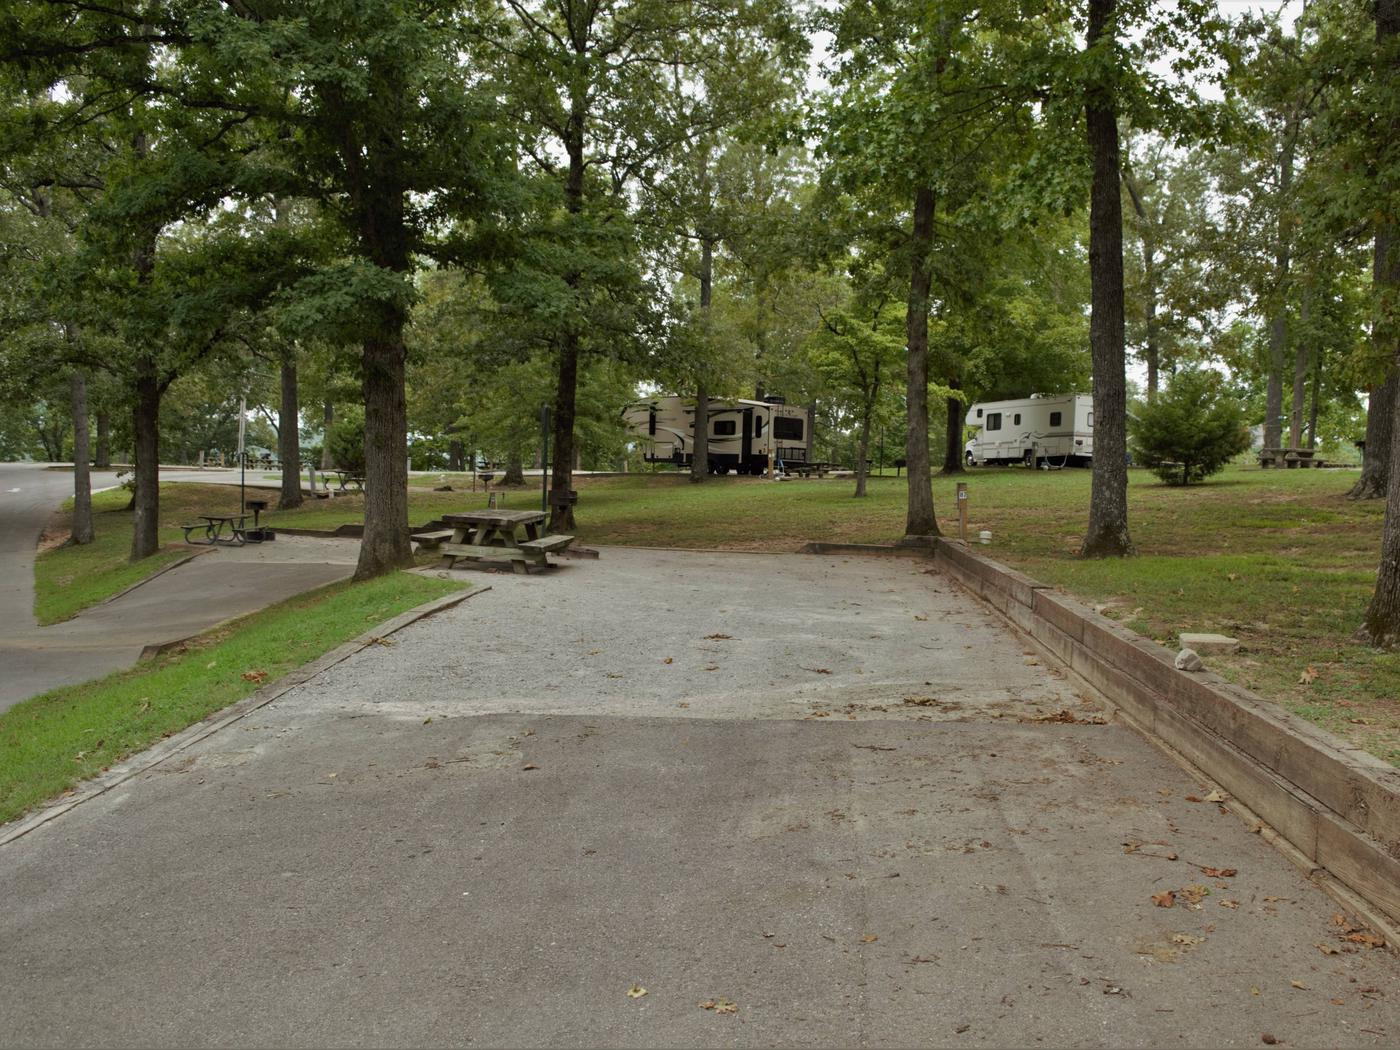 WILLOW GROVE CAMPGROUND SITE #87